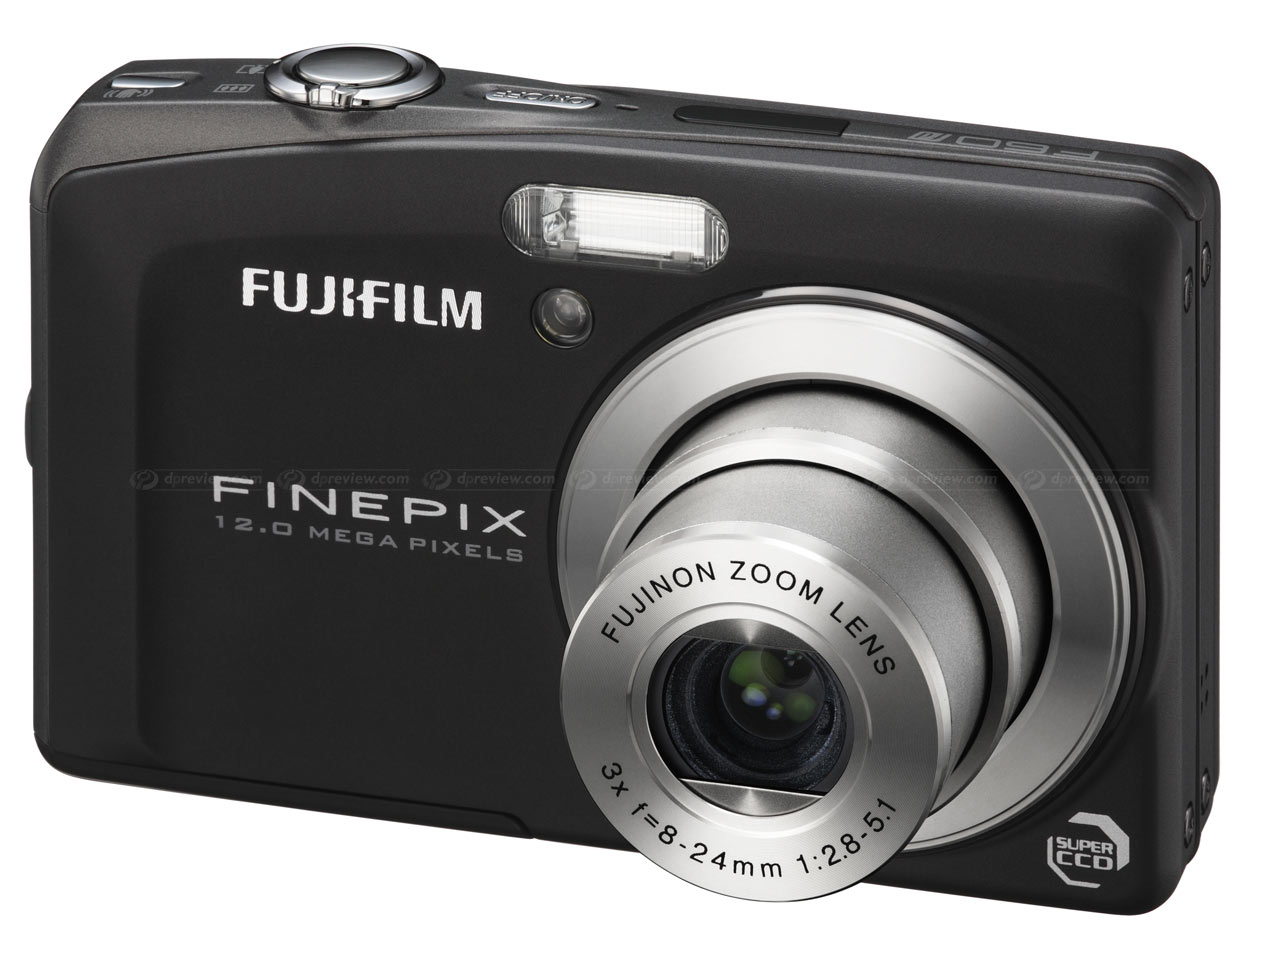 fujifilm finepix f60fd digital photography review rh dpreview com Fujifilm FinePix S-Series Fujifilm FinePix XP